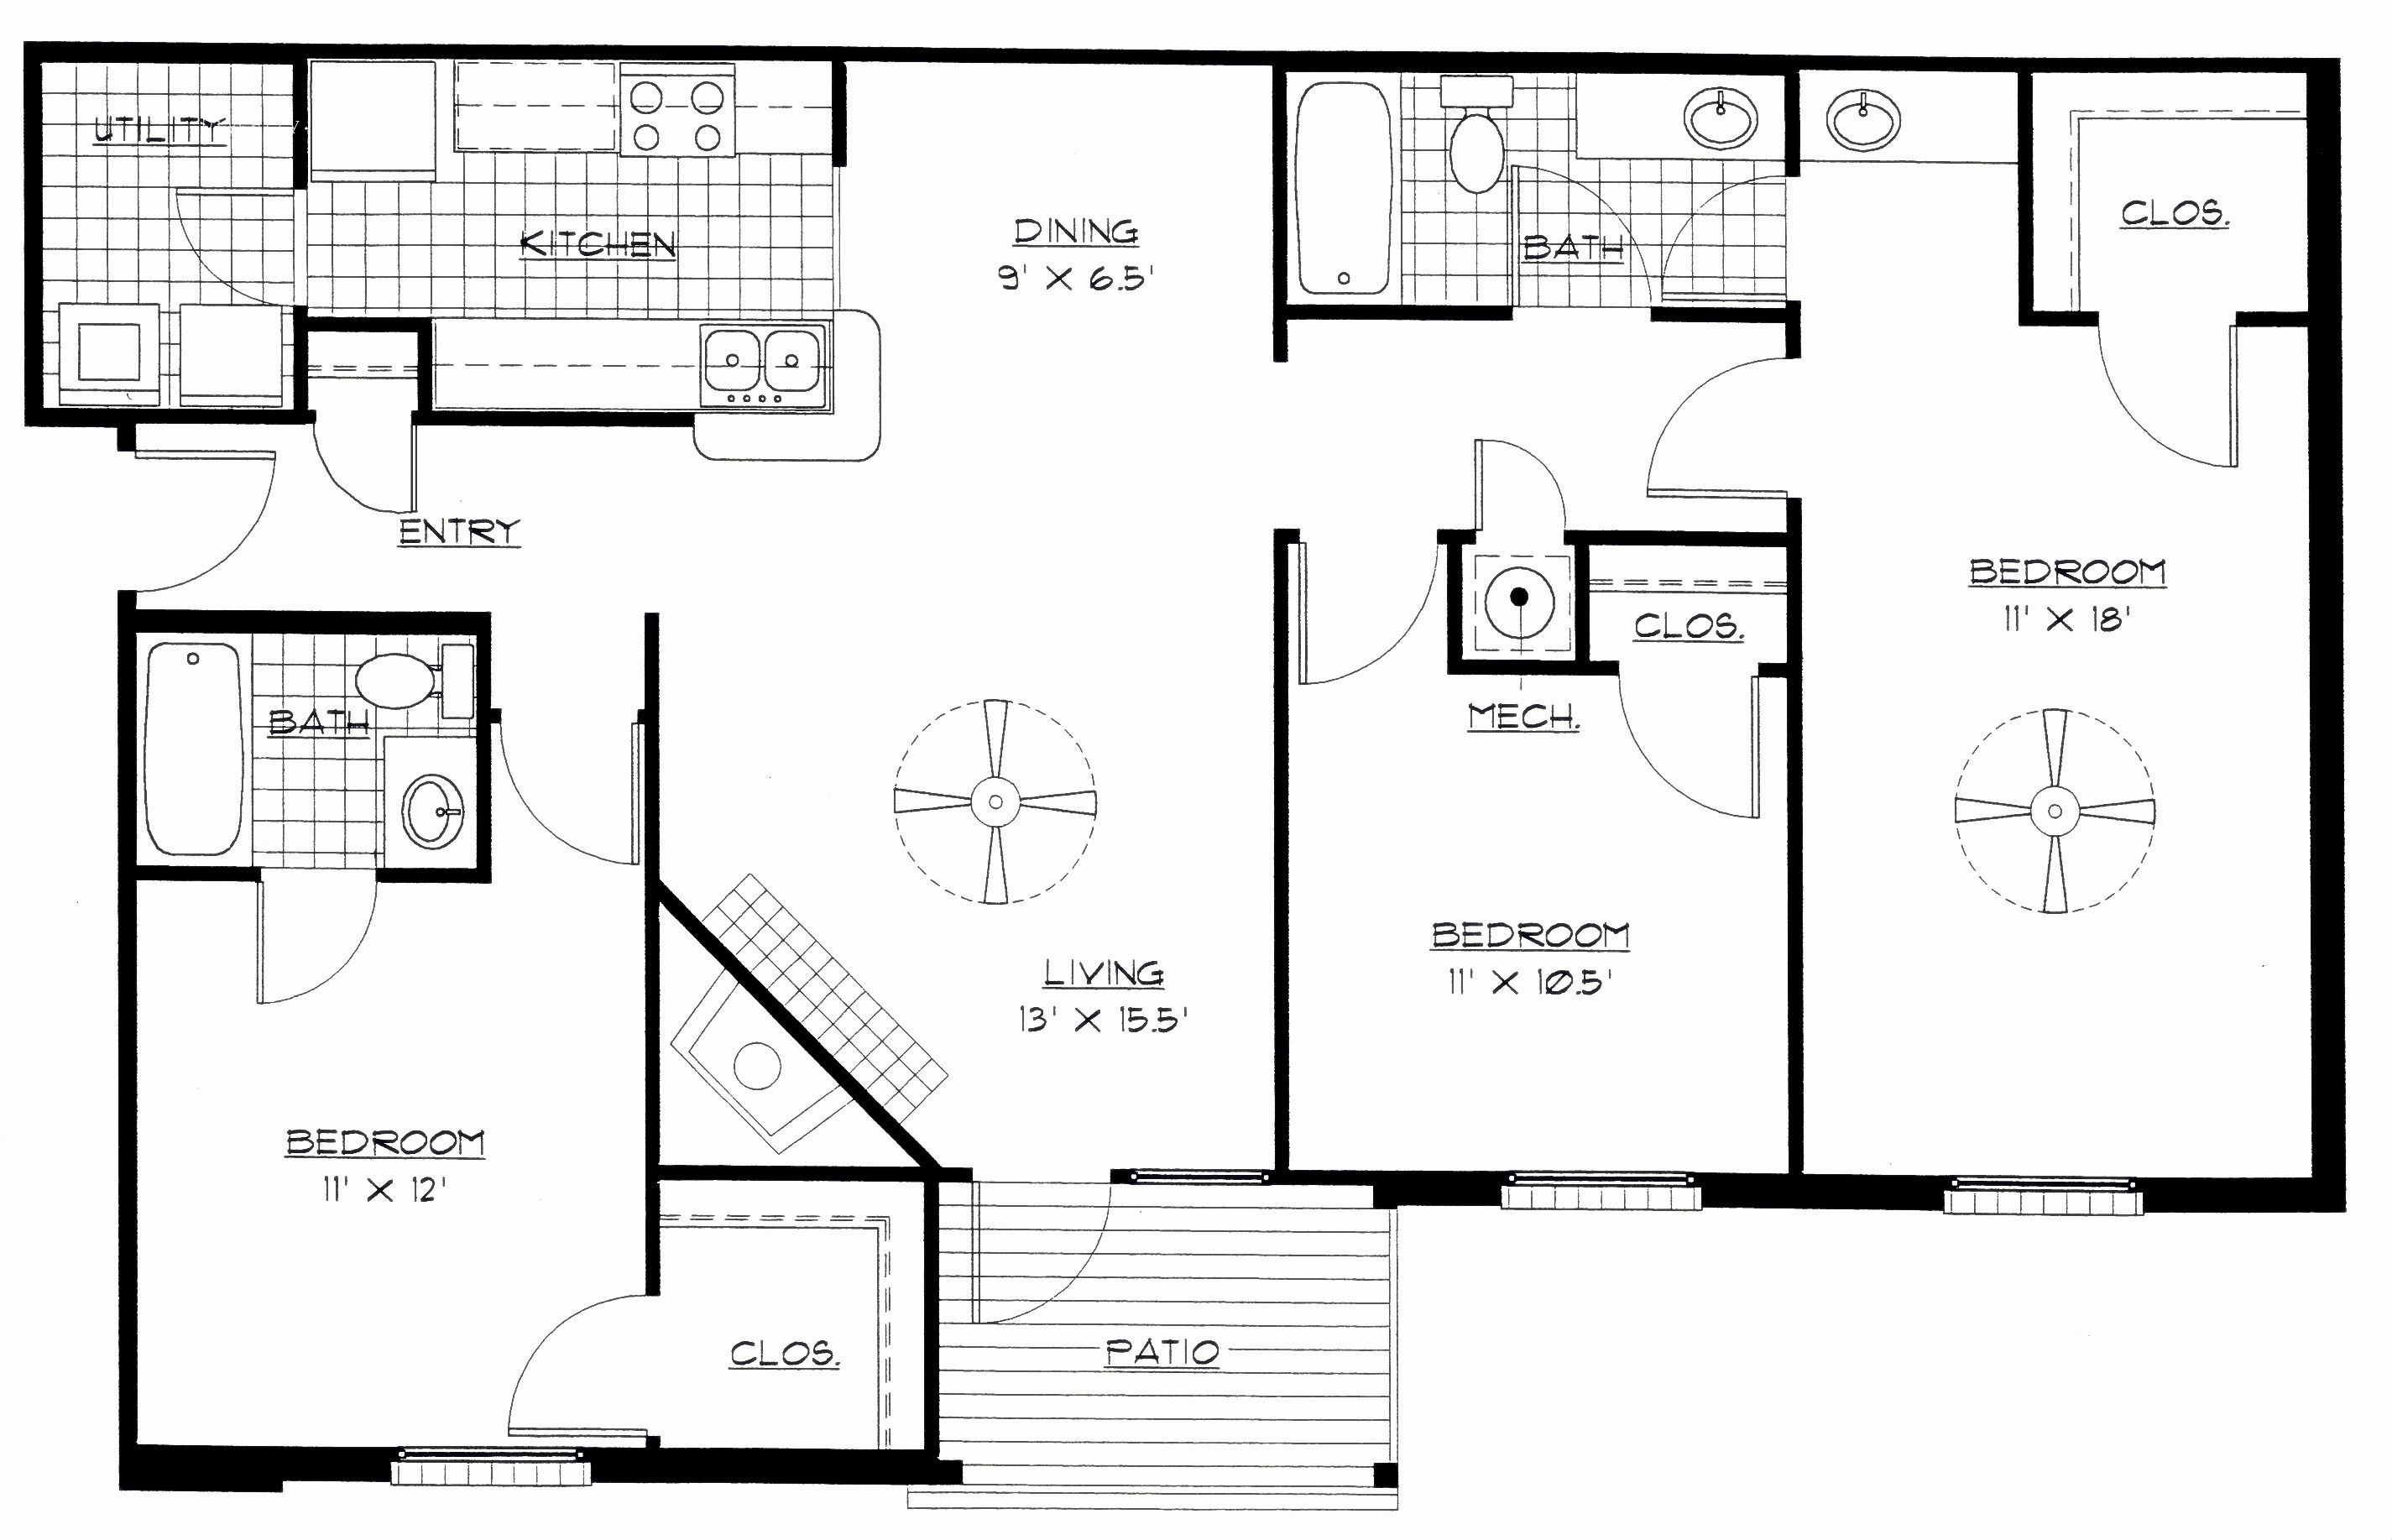 3 Bedroom Floor Plan With Dimensions Pdf Awesome House Designs Bedroom Floor Plans Floor Plan With Dimensions Three Bedroom House Plan